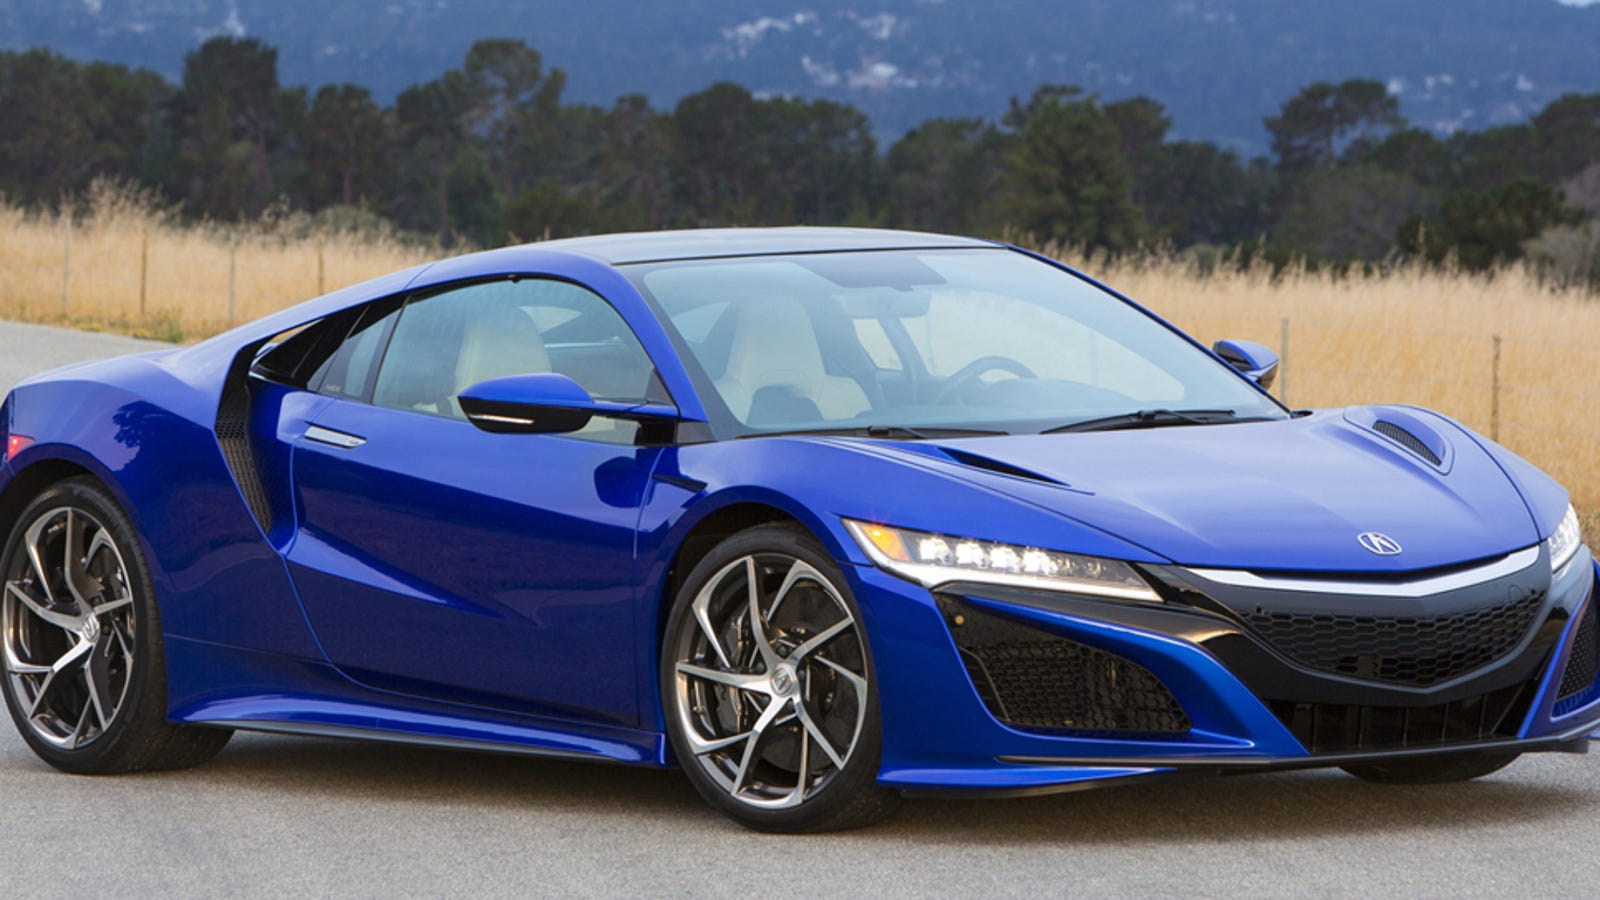 At Long Last The 2017 Acura Nsx Arrives With A 156 000 Price Tag